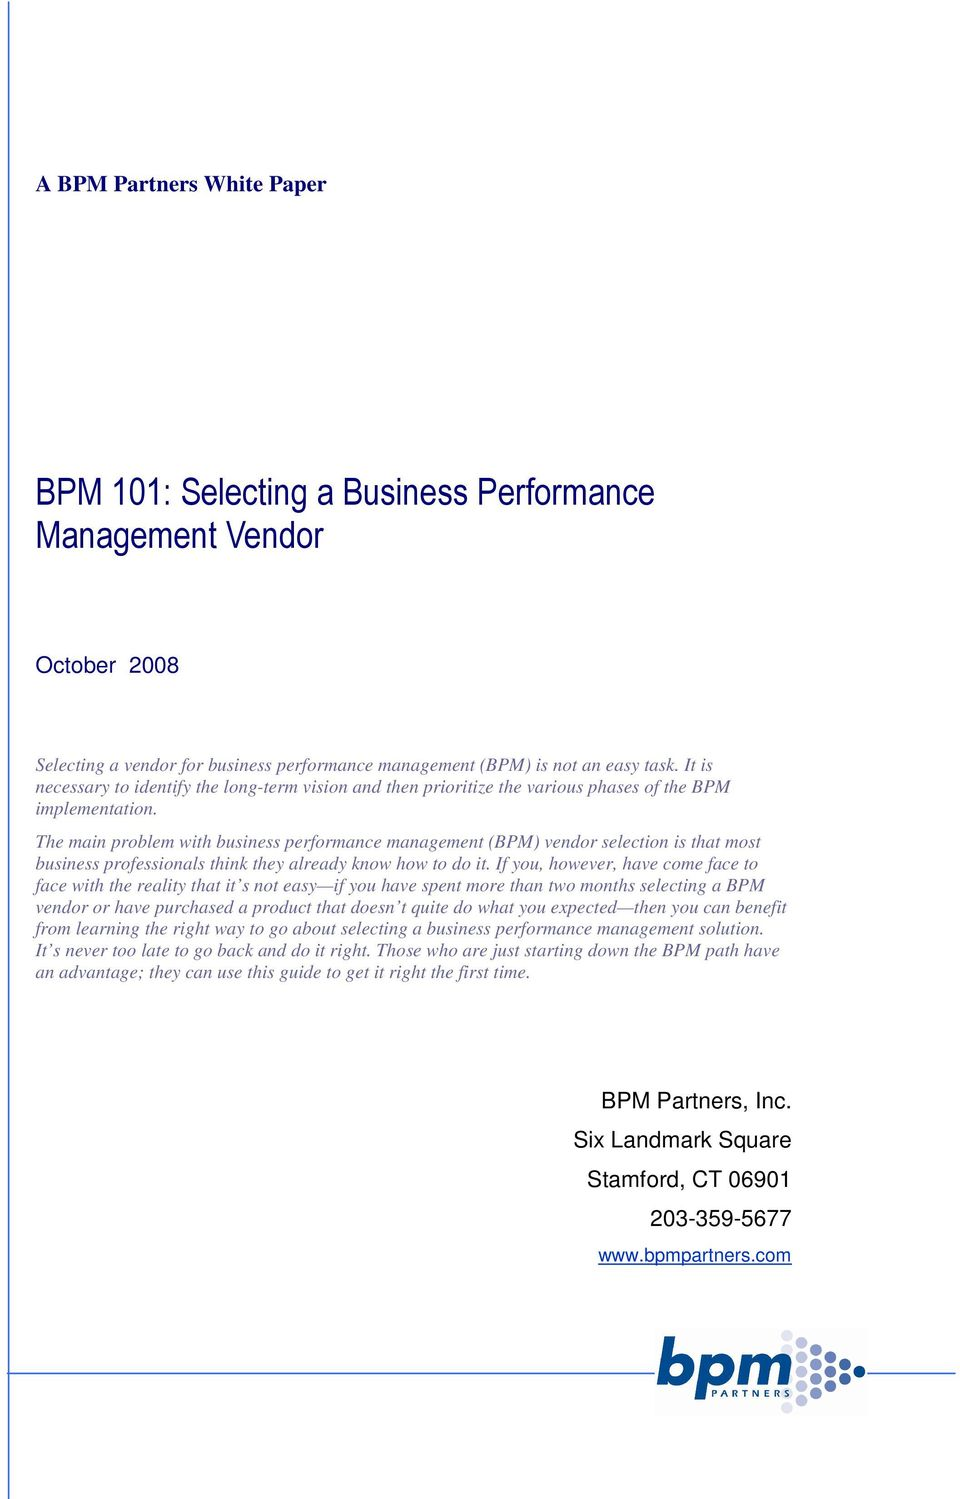 The main problem with business performance management (BPM) vendor selection is that most business professionals think they already know how to do it.